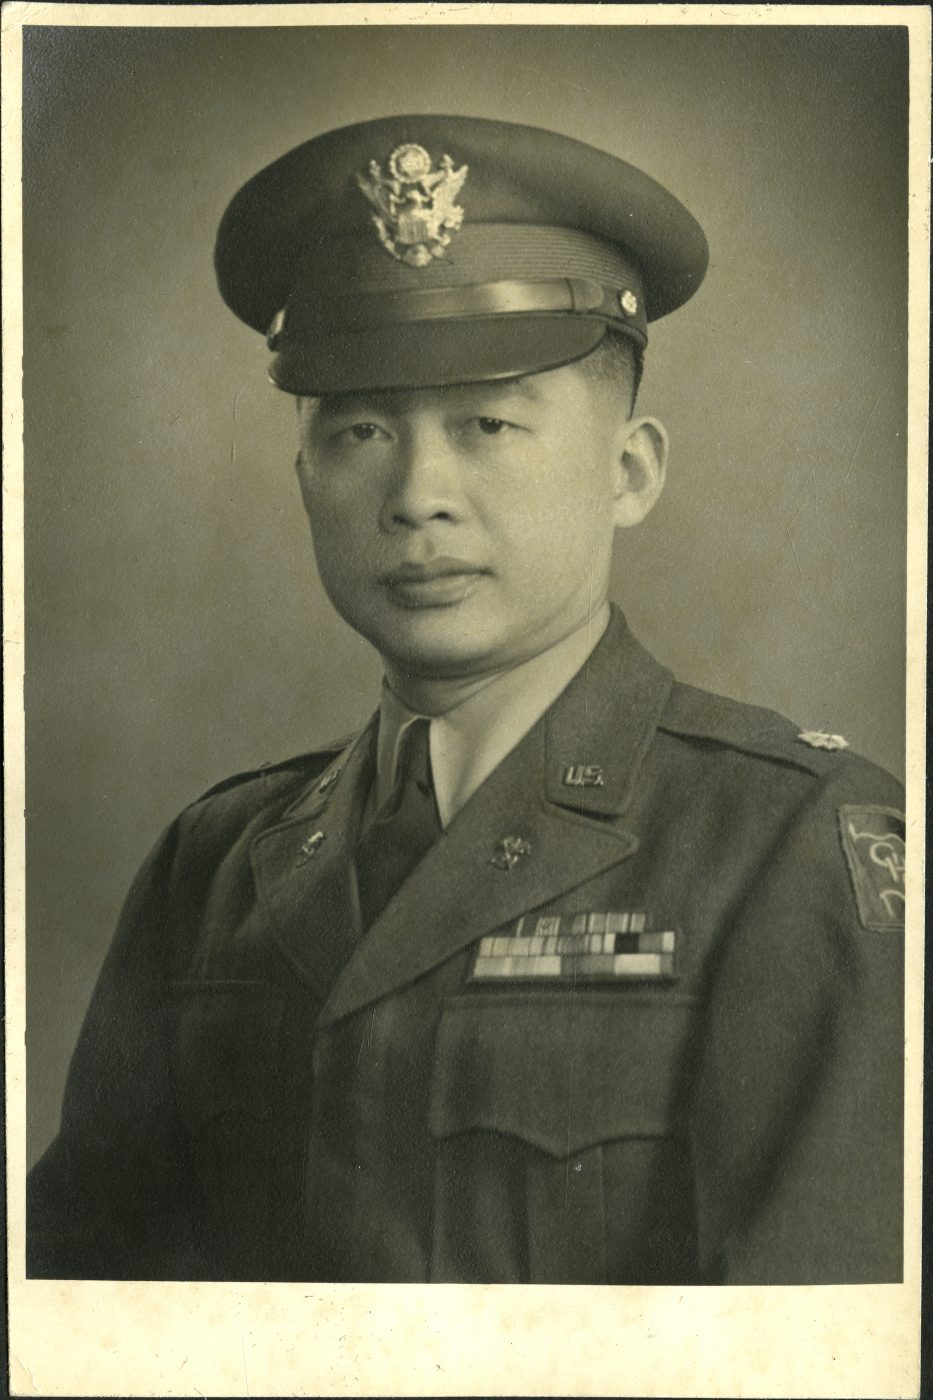 21 October 2019 Posted. Ernest Eng in uniform; Courtesy of Eng Family, Museum of Chinese in America (MOCA) collection. 身着军装的Ernest Eng;Eng家捐赠, 美国华人博物馆(MOCA)馆藏